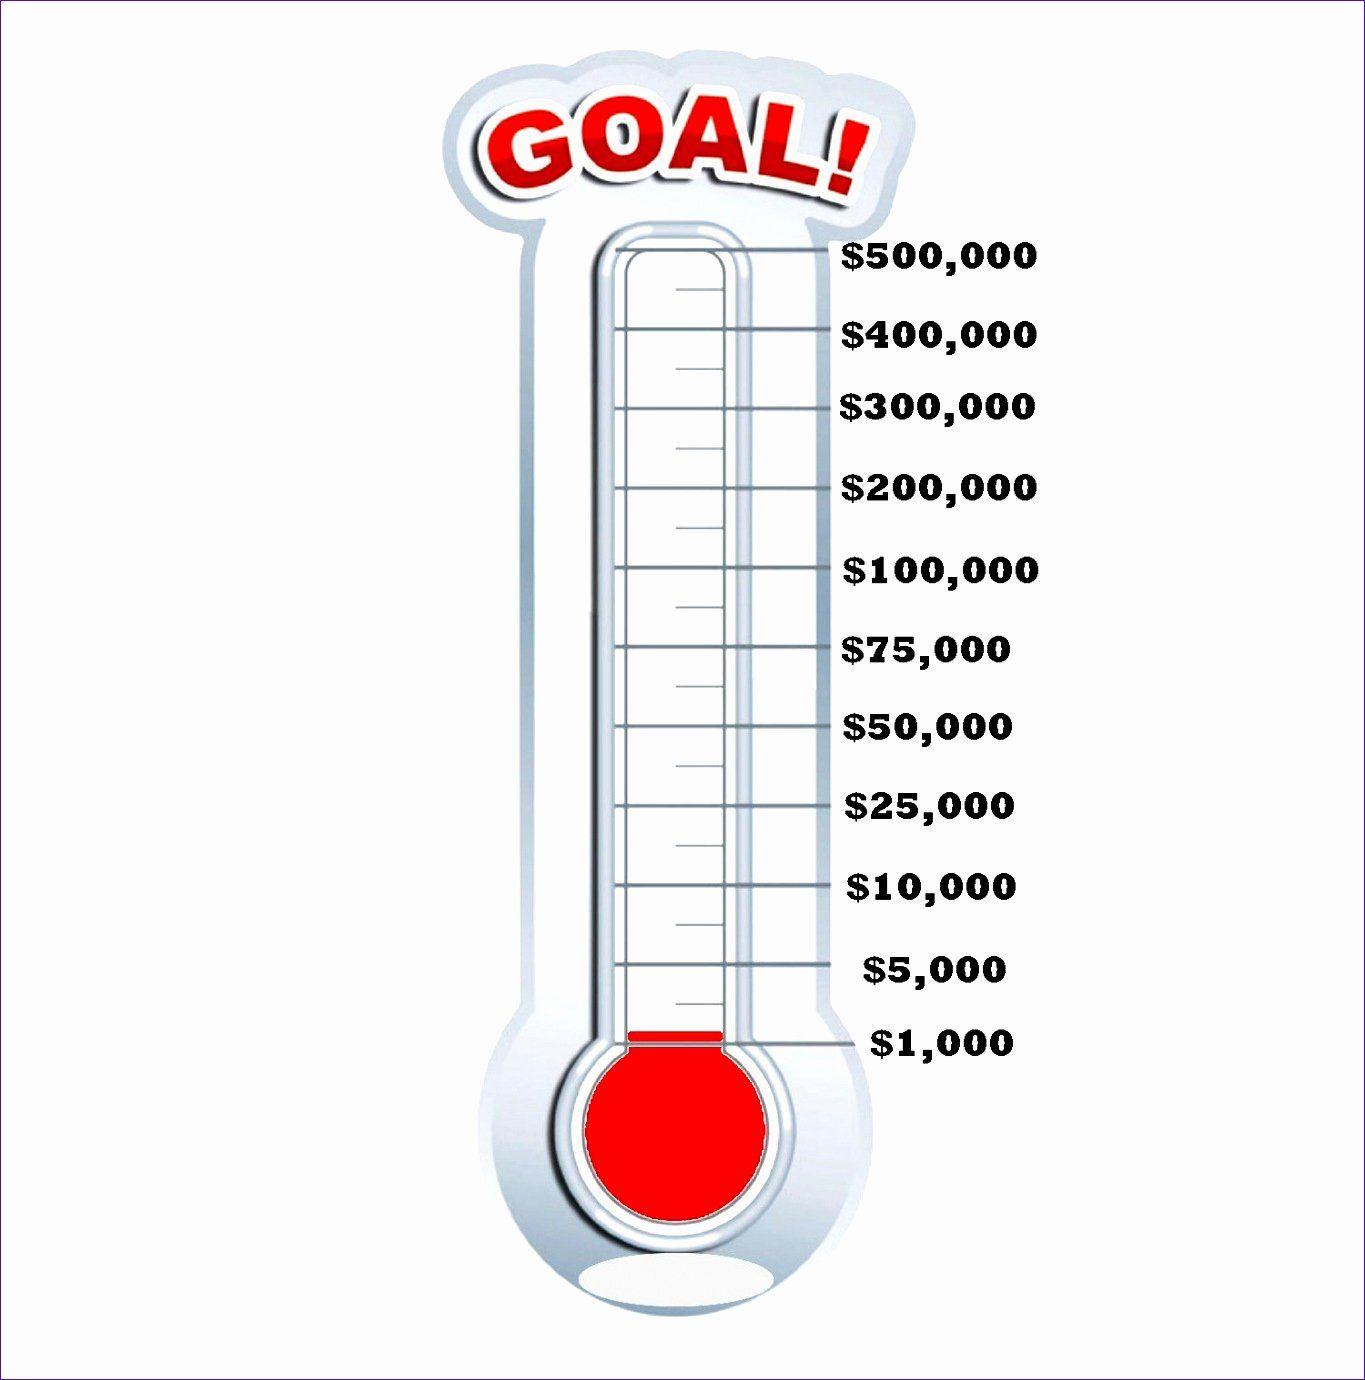 Goal Thermometer Template Excel Beautiful 9 Fundraising Thermometer Templa Goal Thermometer Templates Fundraising Thermometer Templates Fundraising Thermometer